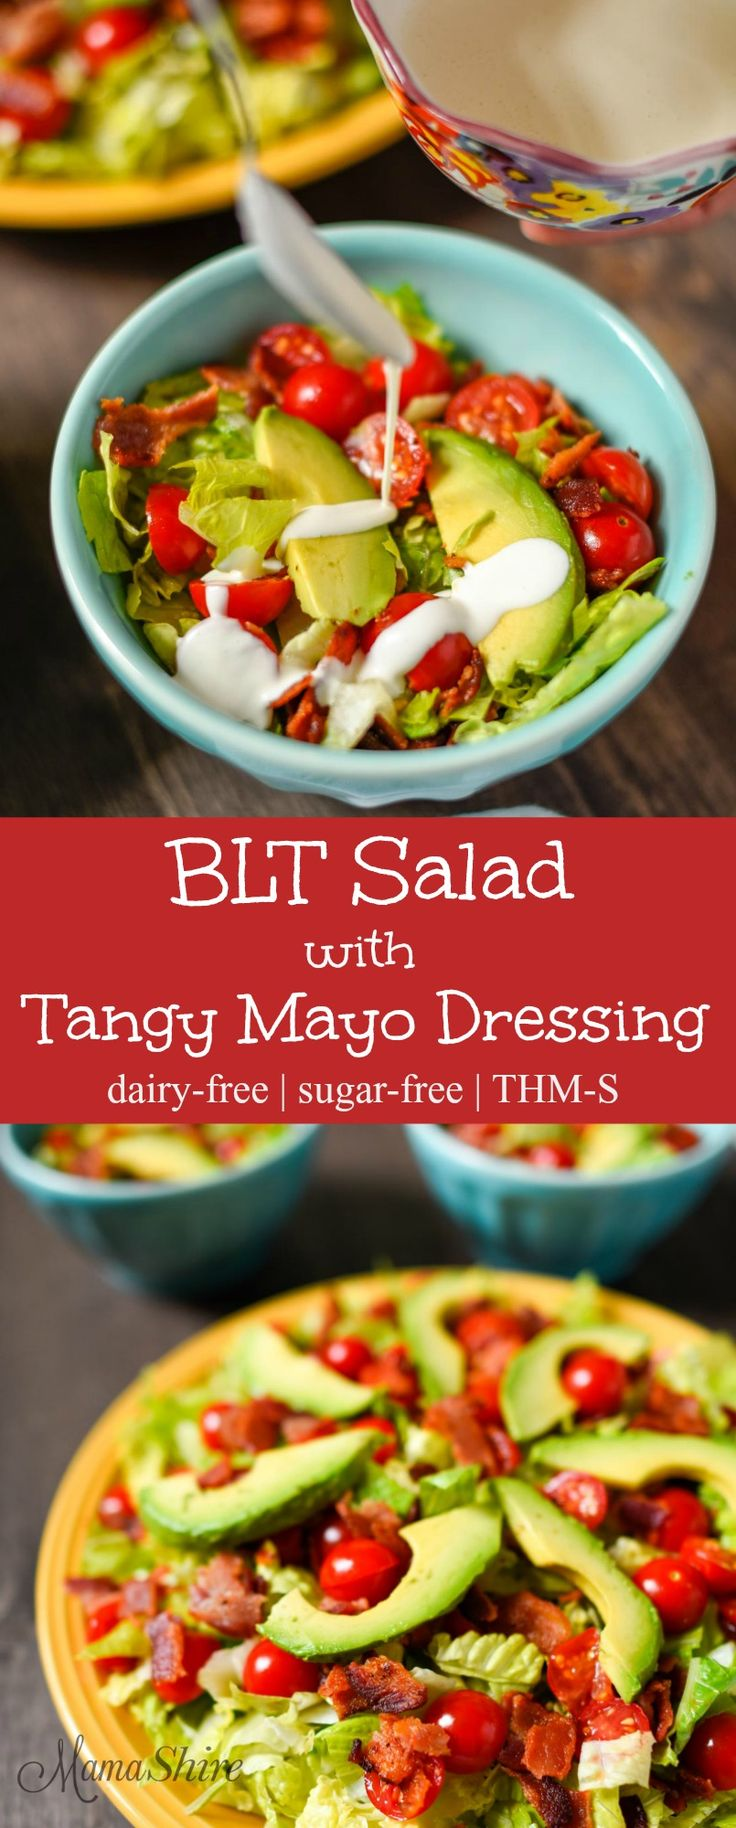 A light and delicious way to enjoy the classic BLT sandwich by turning it into a…